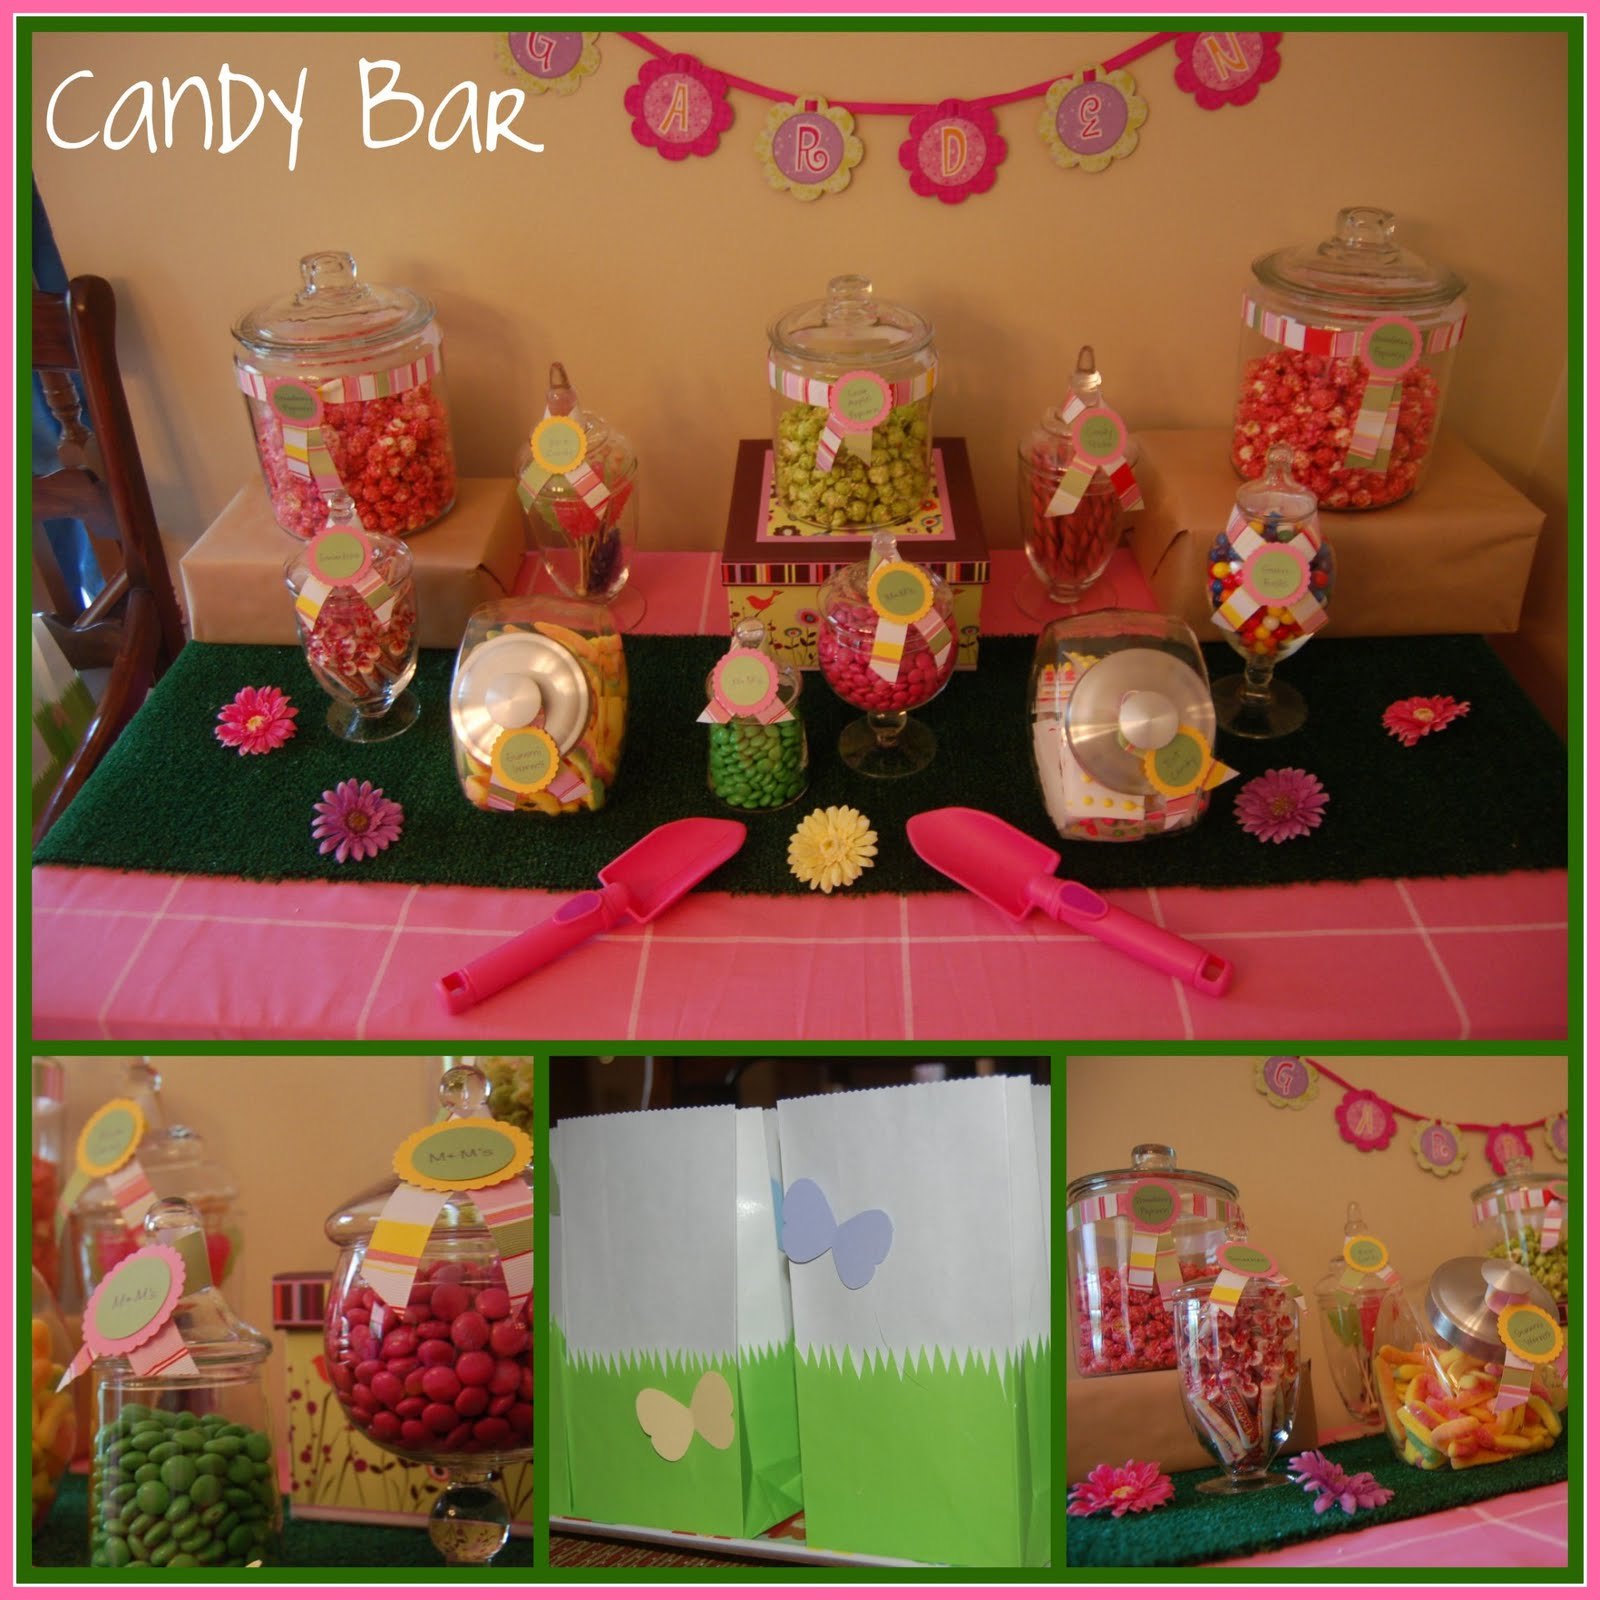 Candybarcollage2g flower birthday party izmirmasajfo Images